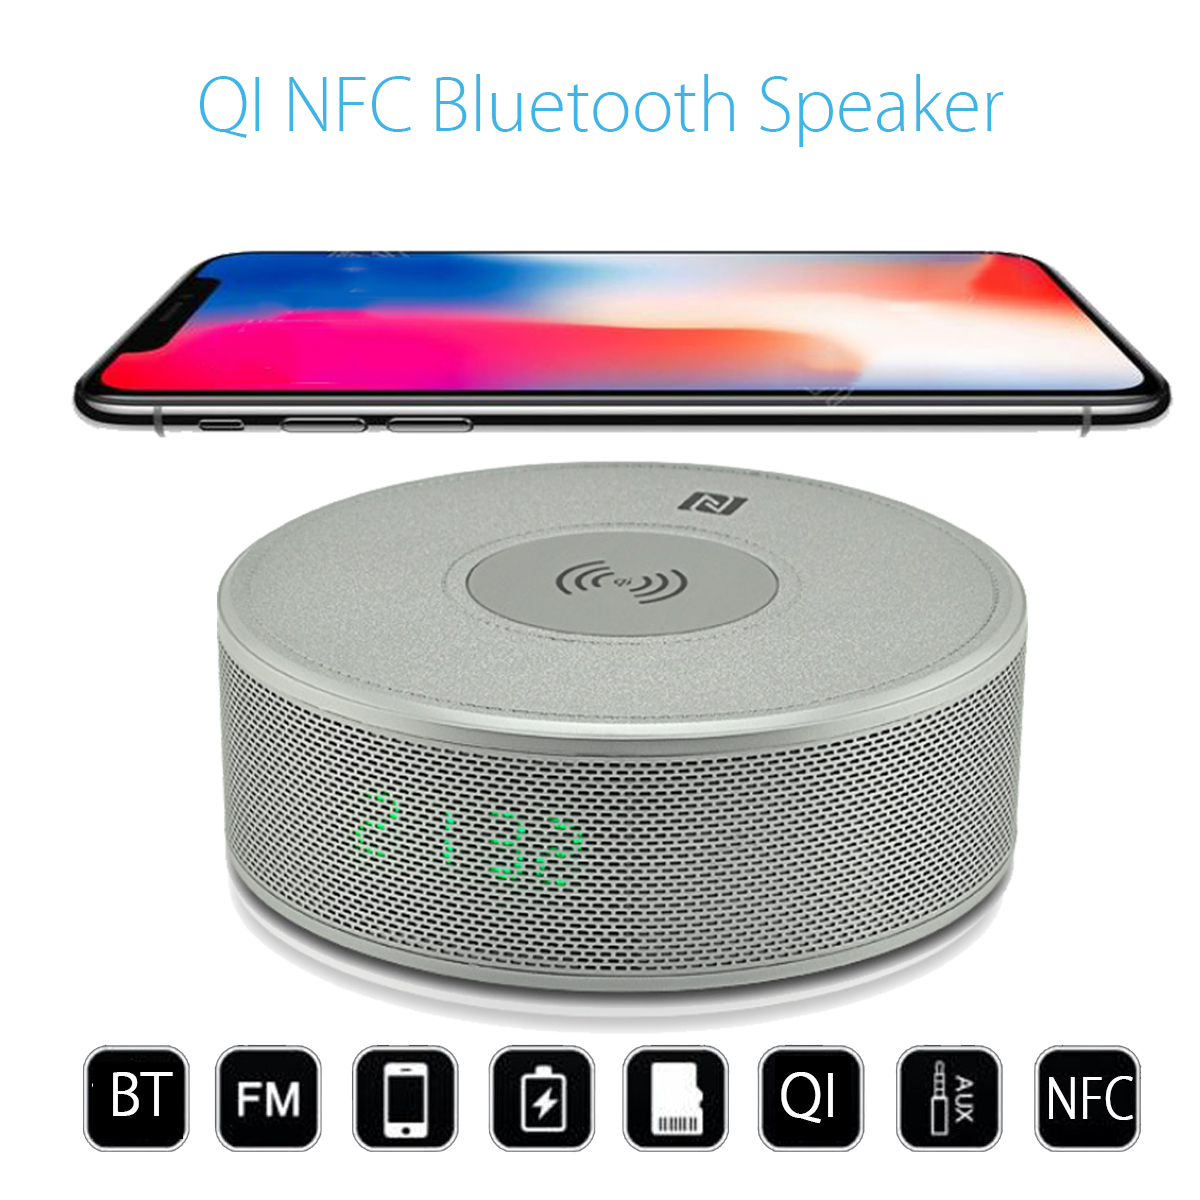 Multifunction Qi Wireless Nfc Bluetooth Speaker Portable Radio Loudspeaker Mobile Phone Charger Charging Pad Docking Station Portable Speakers Aliexpress